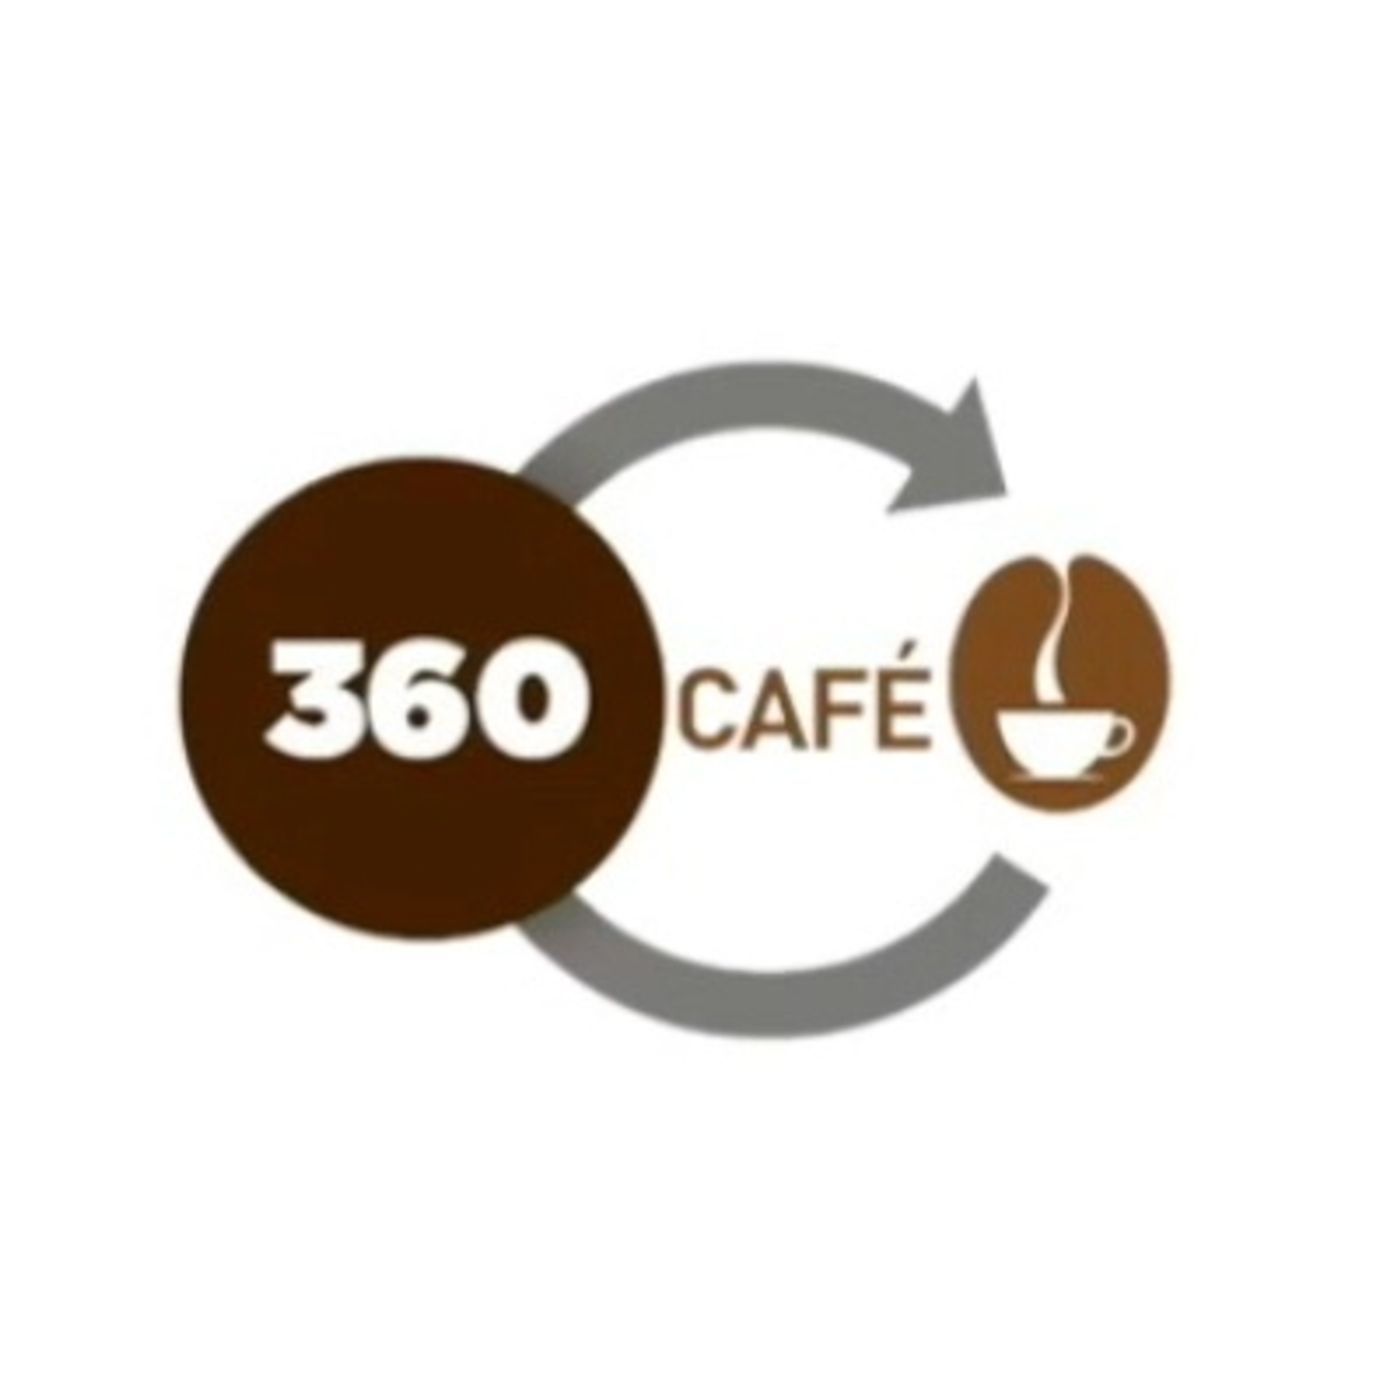 360 Cafe - Action Learning - parte 1